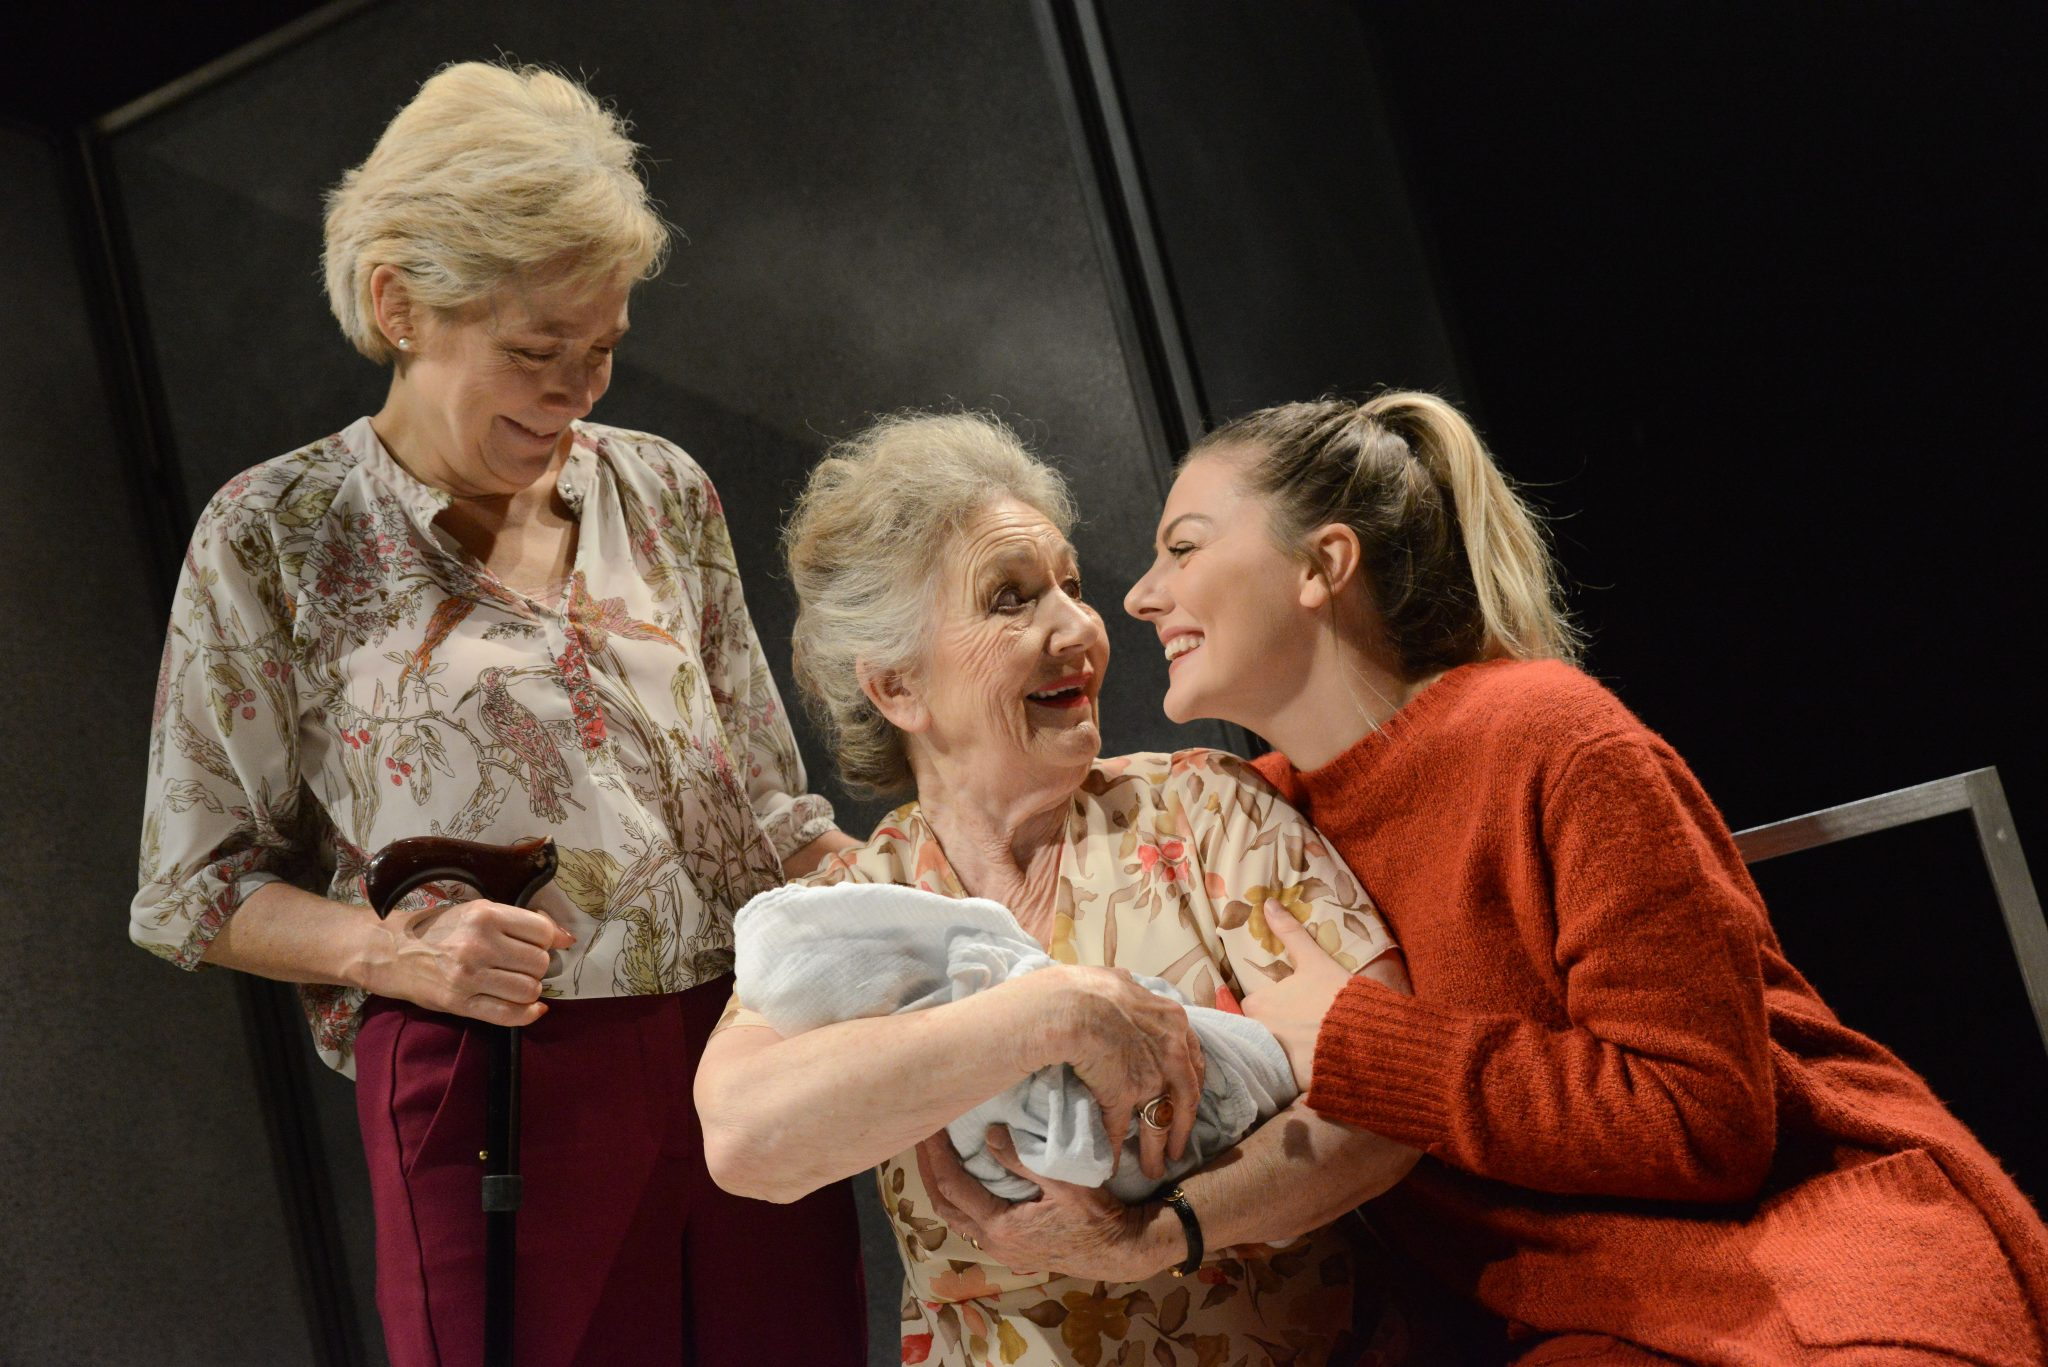 Photo shows all three characters, the grandmother is holding a new-born baby, looking at her granddaughter. Whilst the mother is looking over her shoulder all looking very happy.